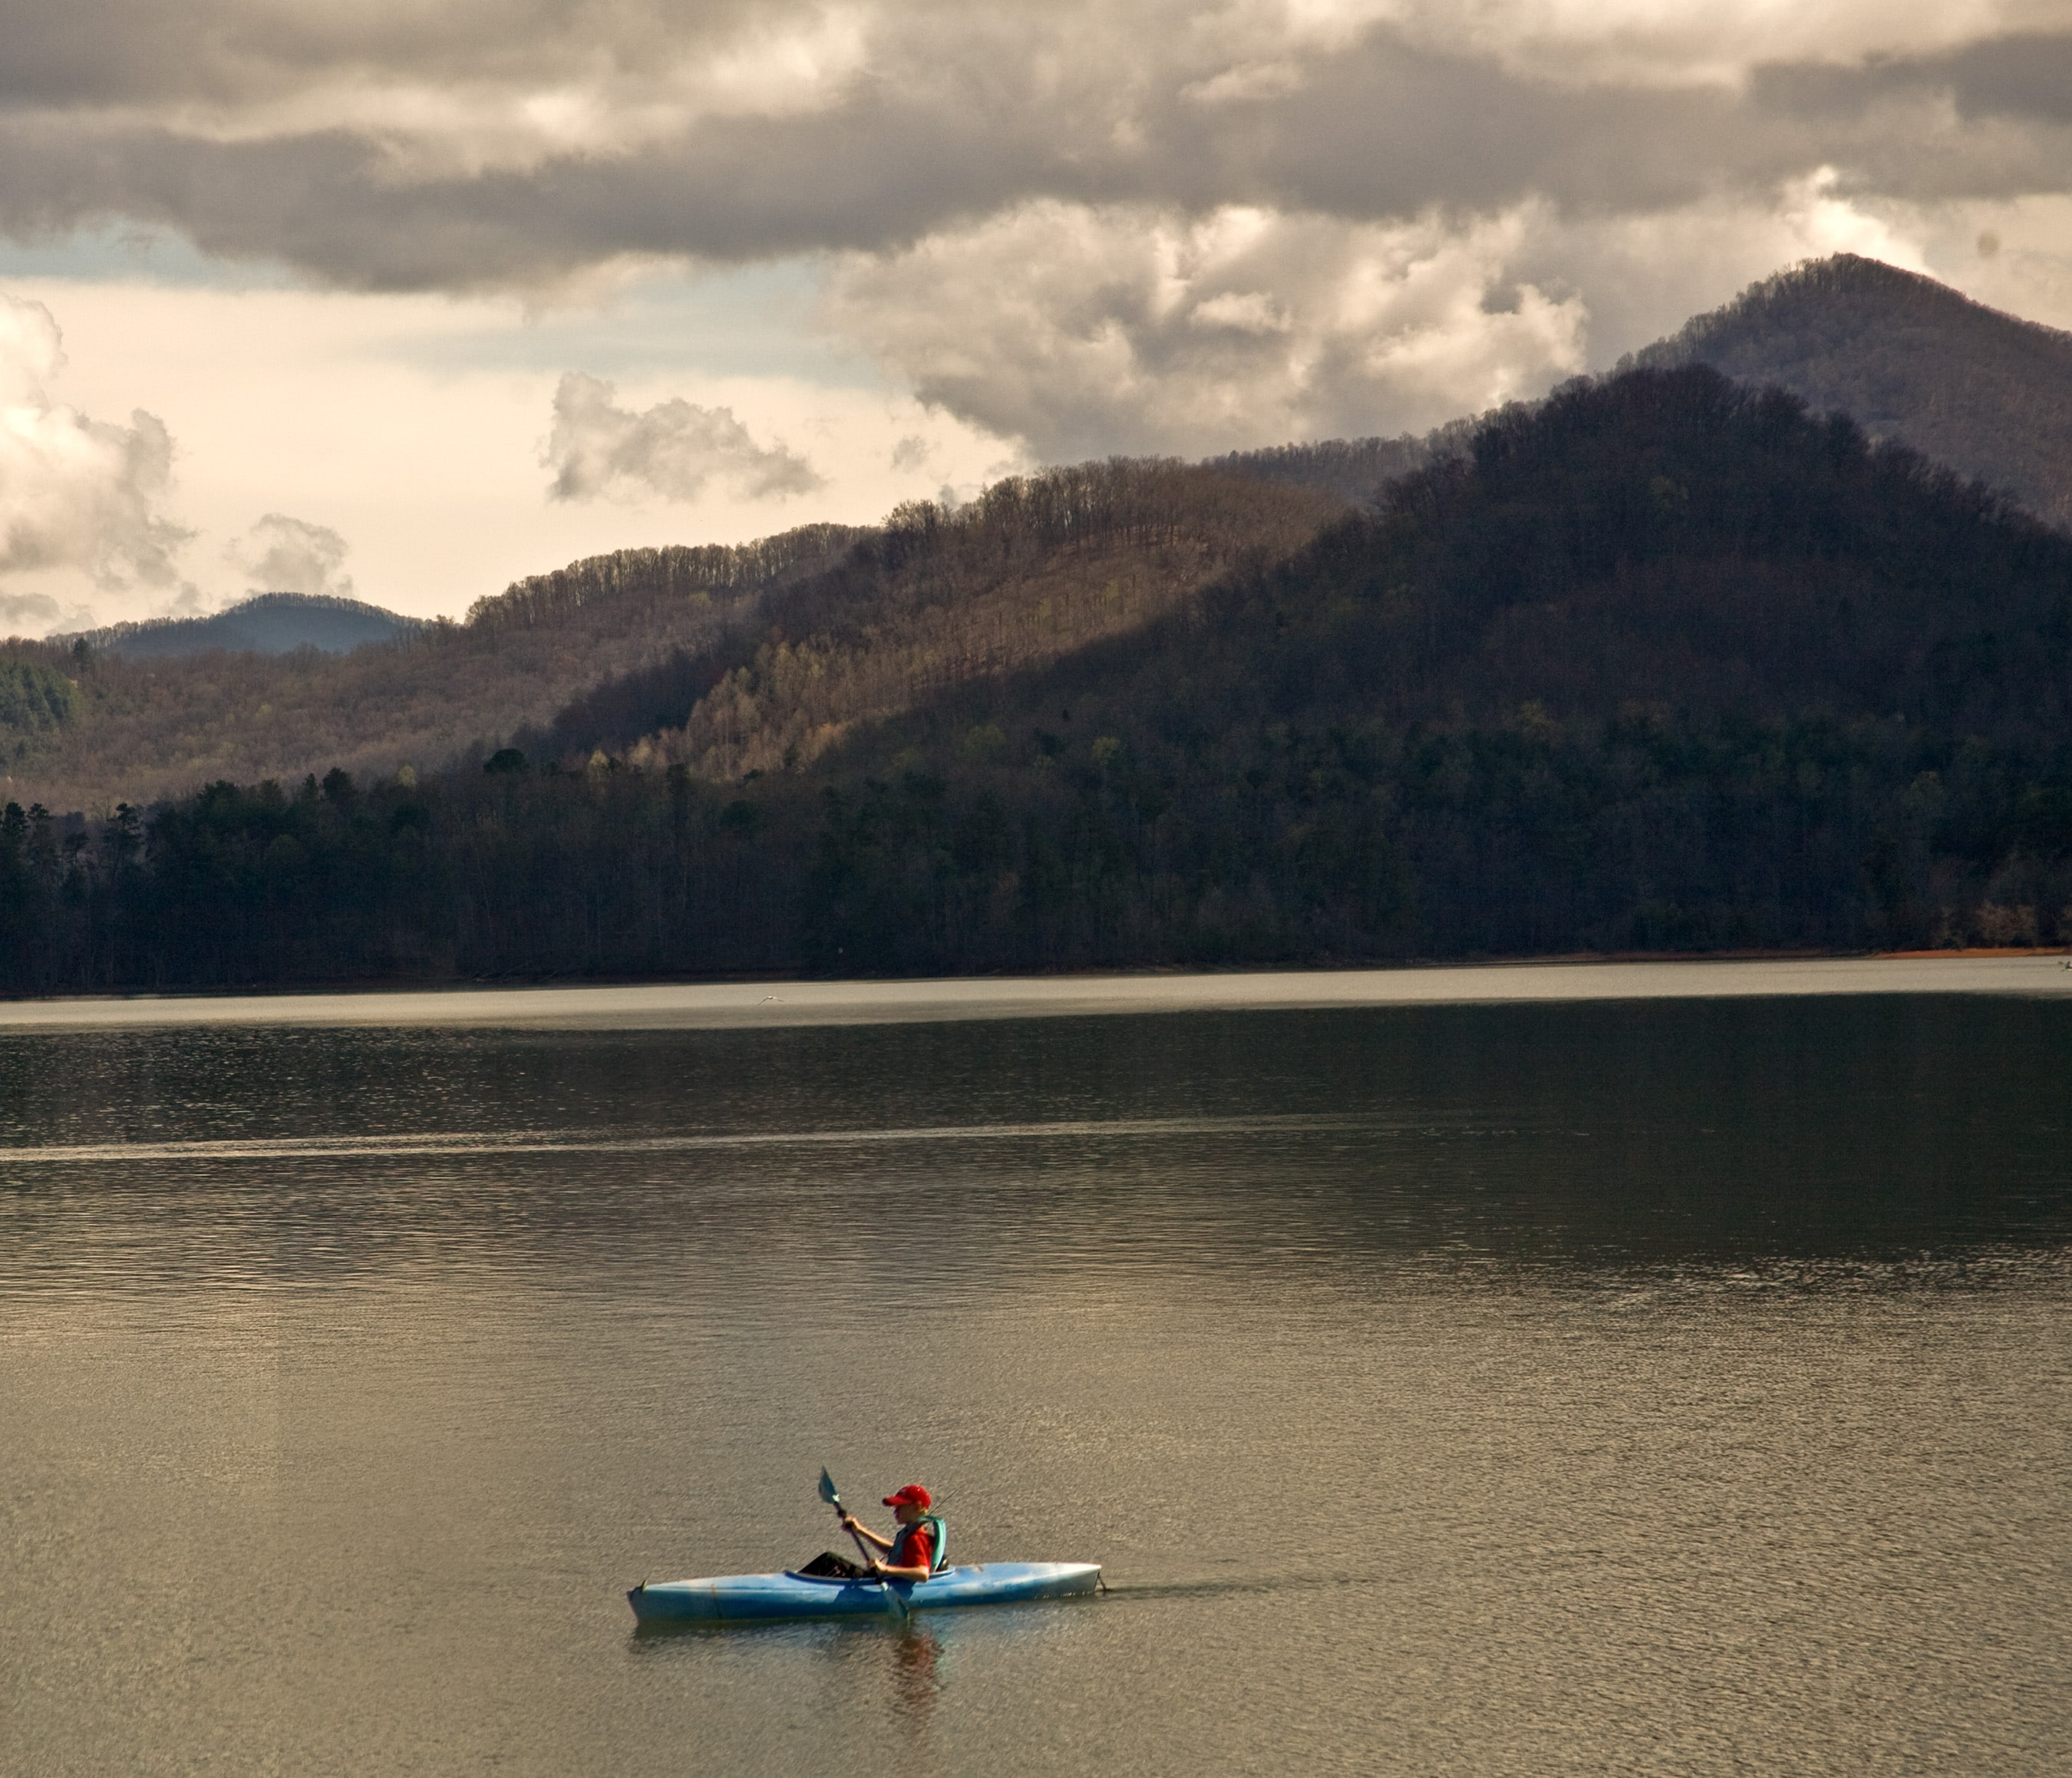 A kayaker paddles with forested mountains in the background.